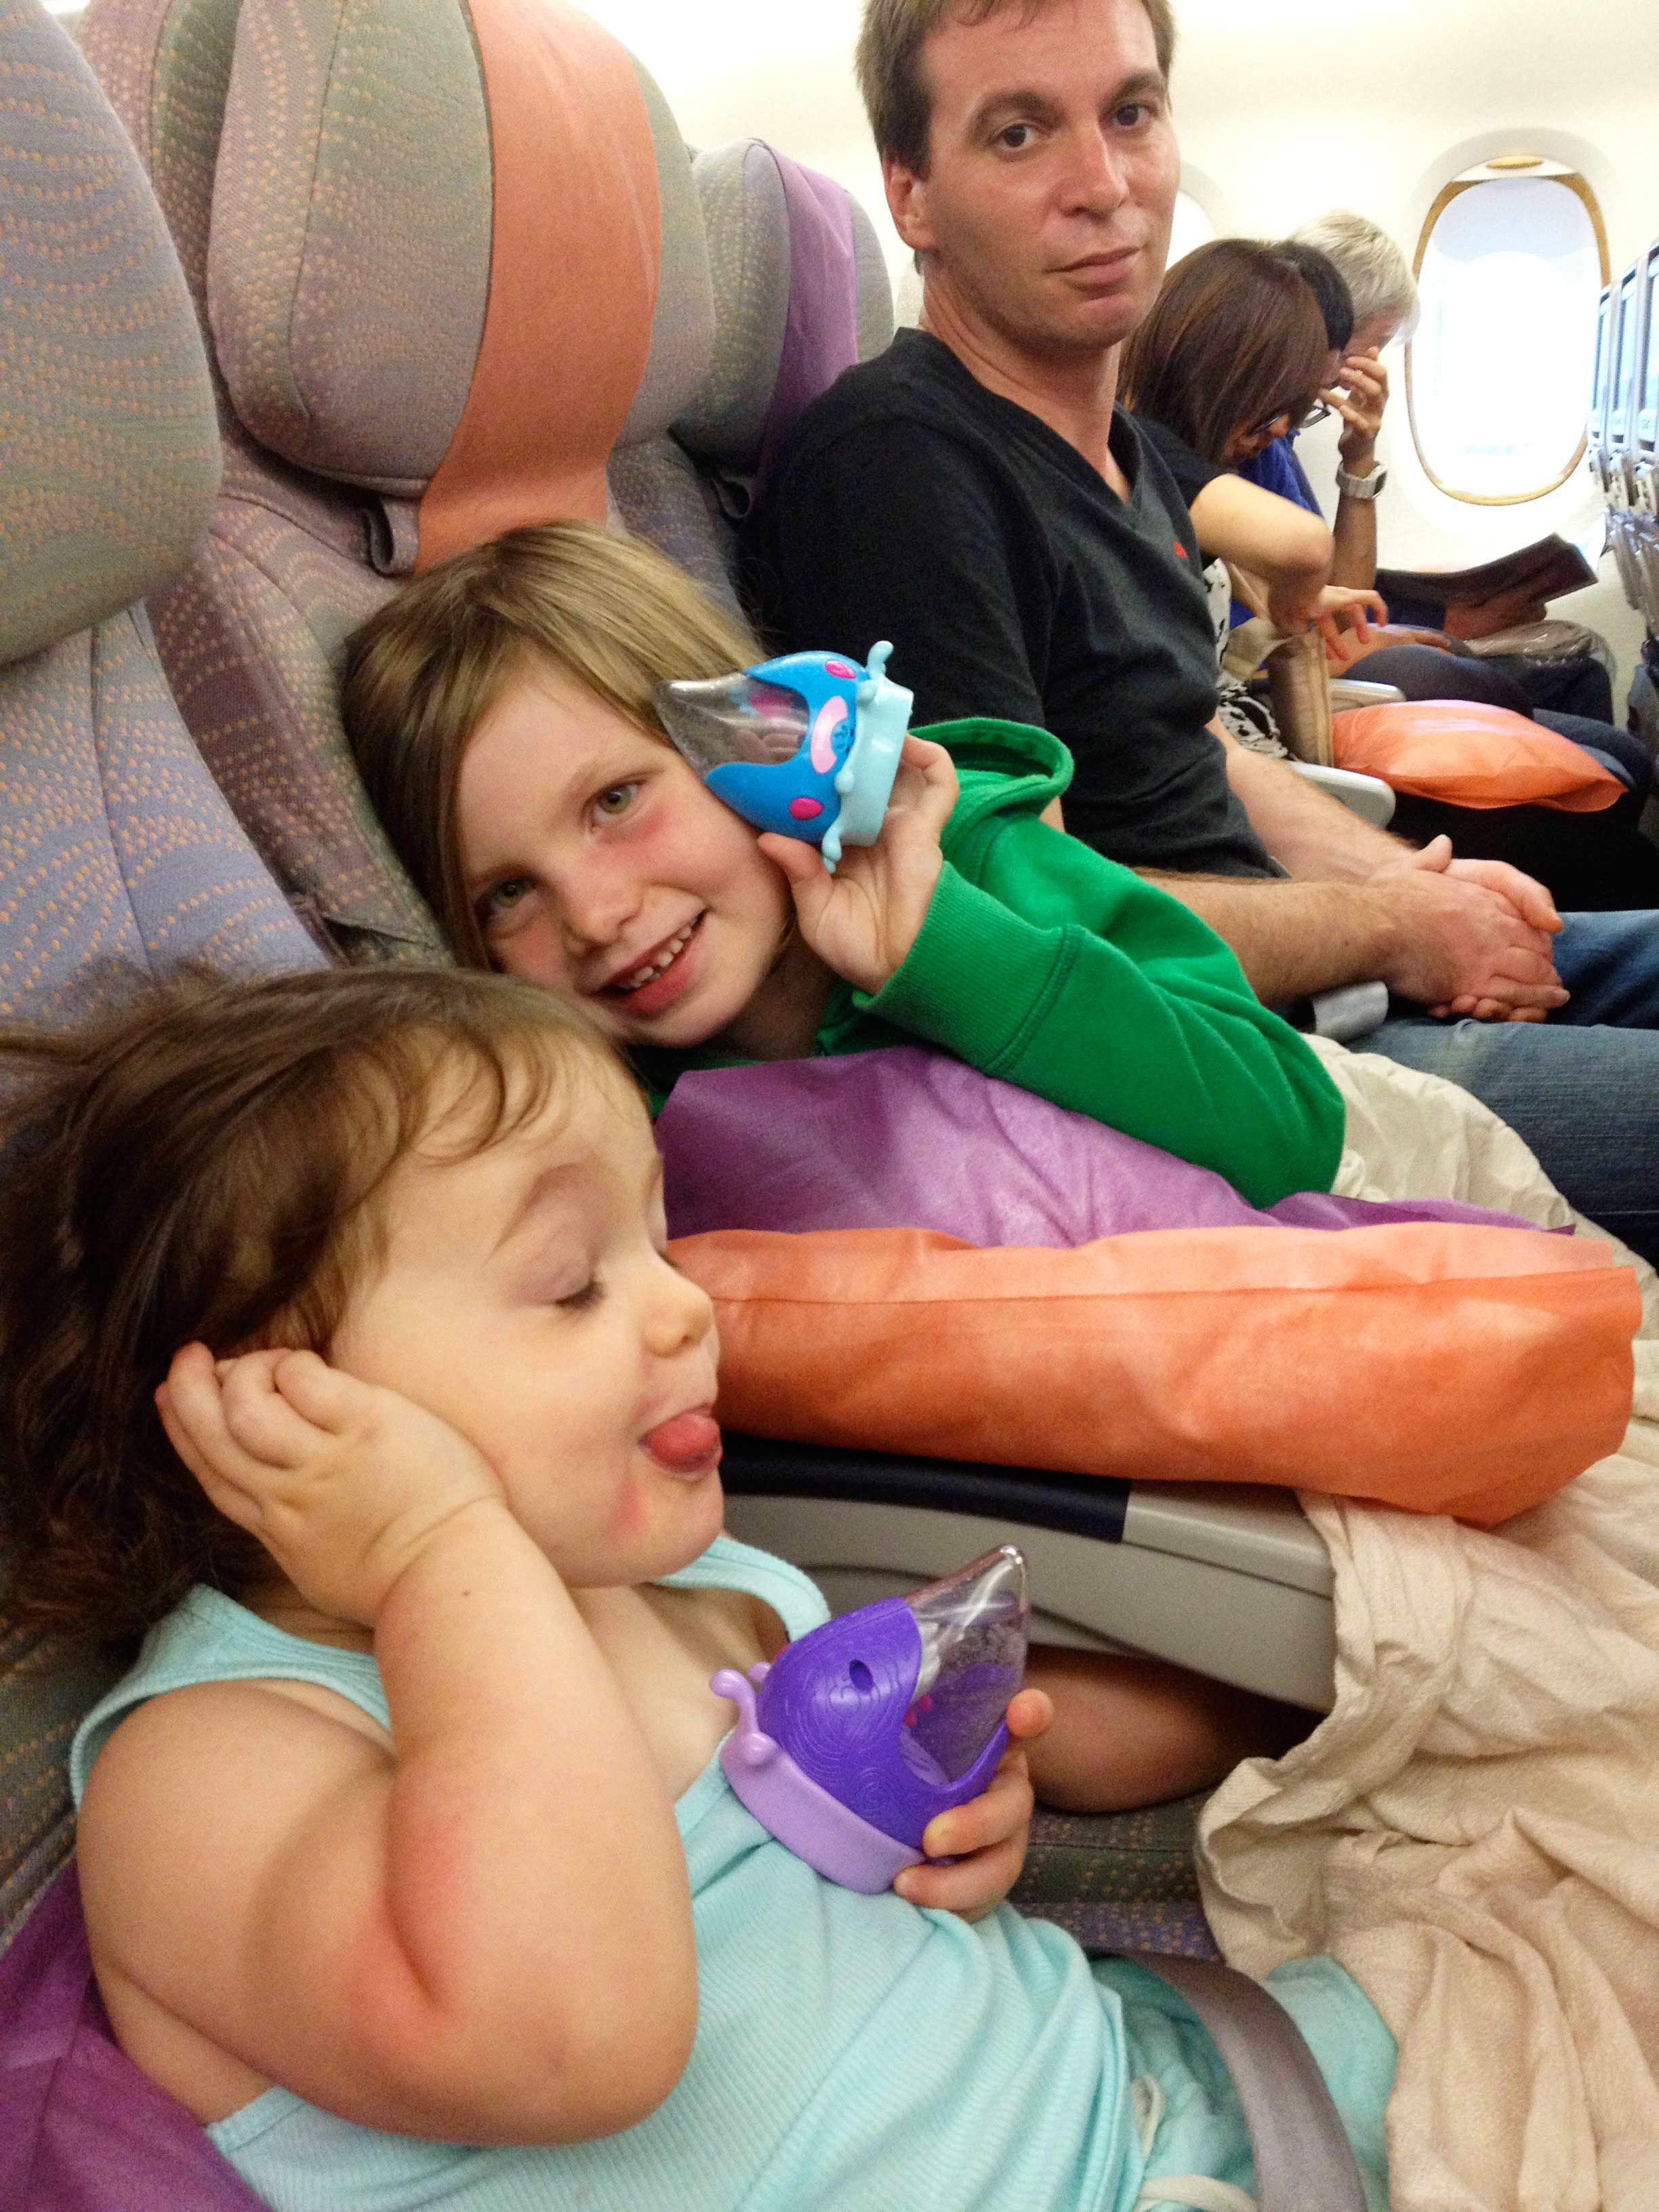 Flying with kids 9 tips for long haul flights with children